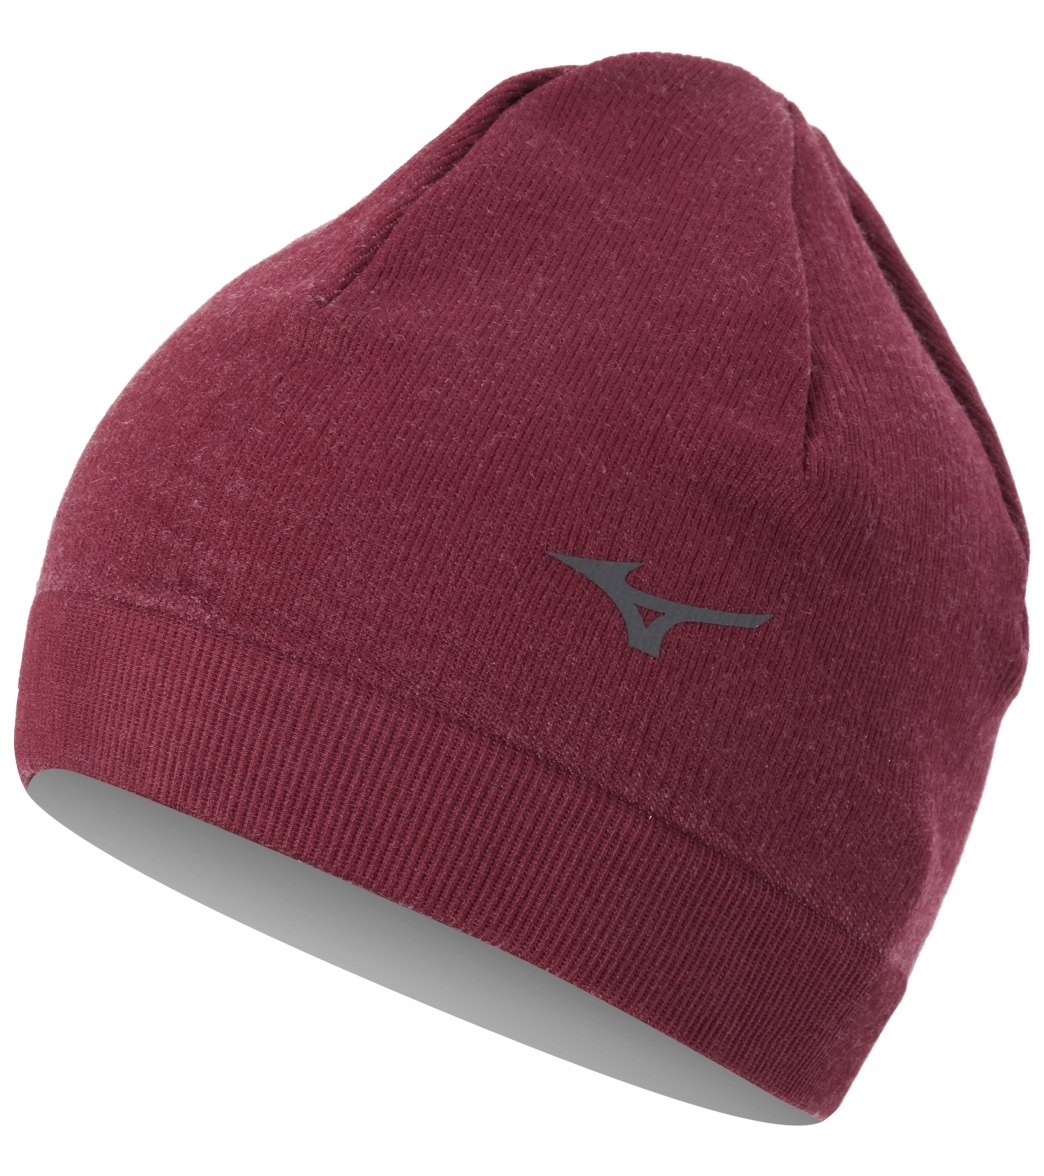 5054454b0 Mizuno Breath Thermo Knitted Hat